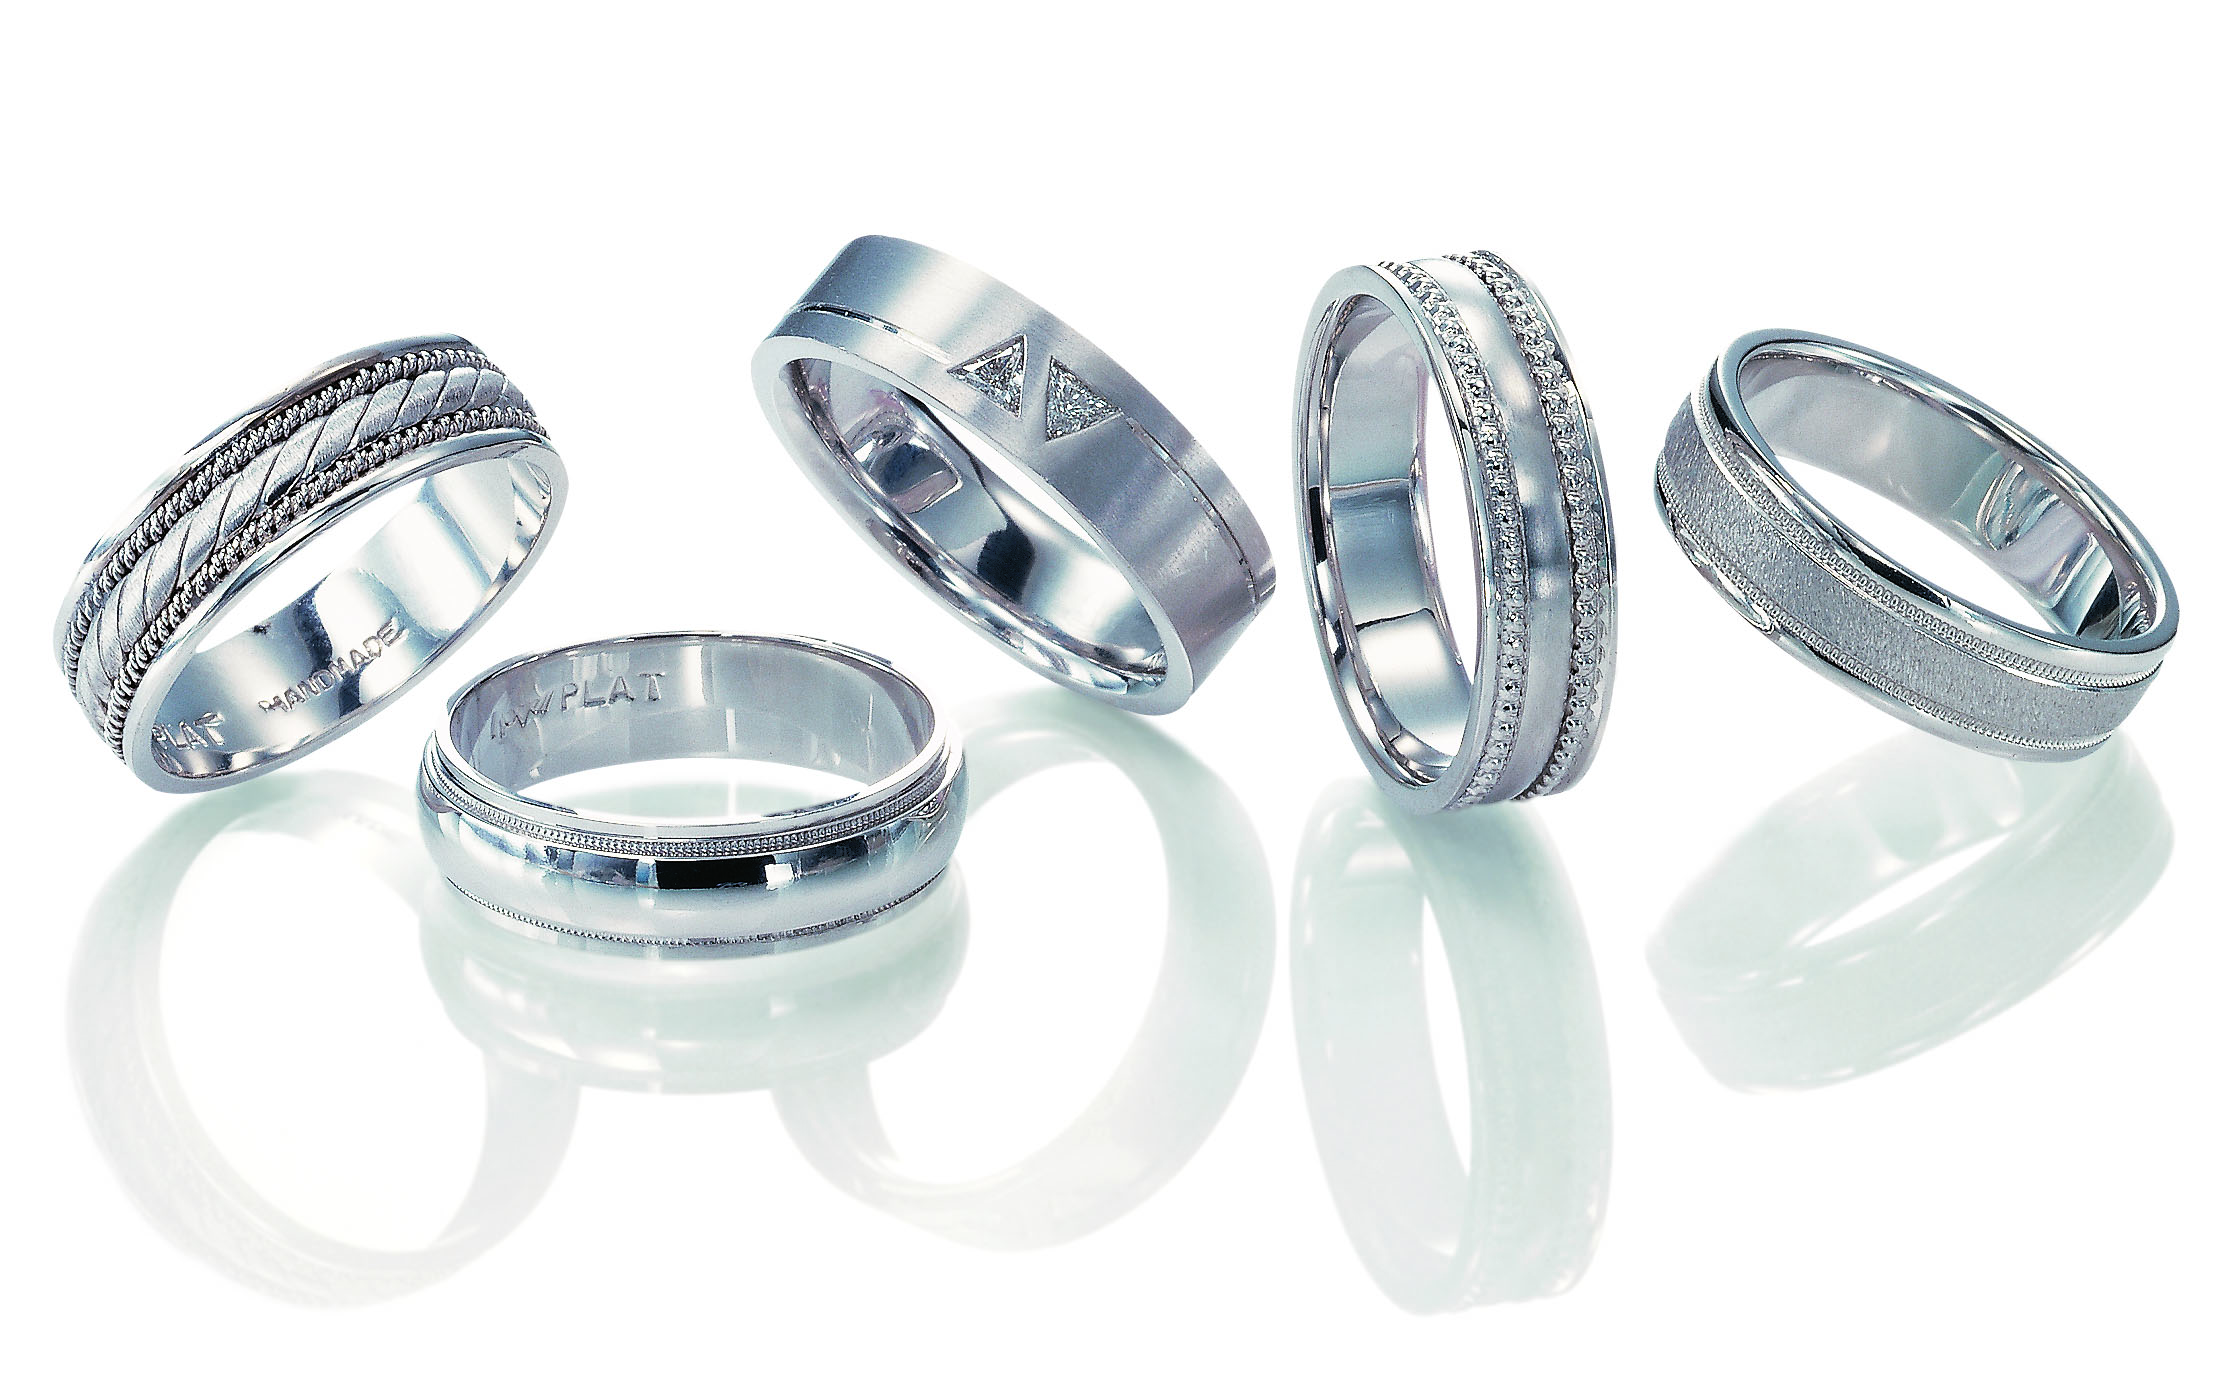 Novell men's platinum wedding bands